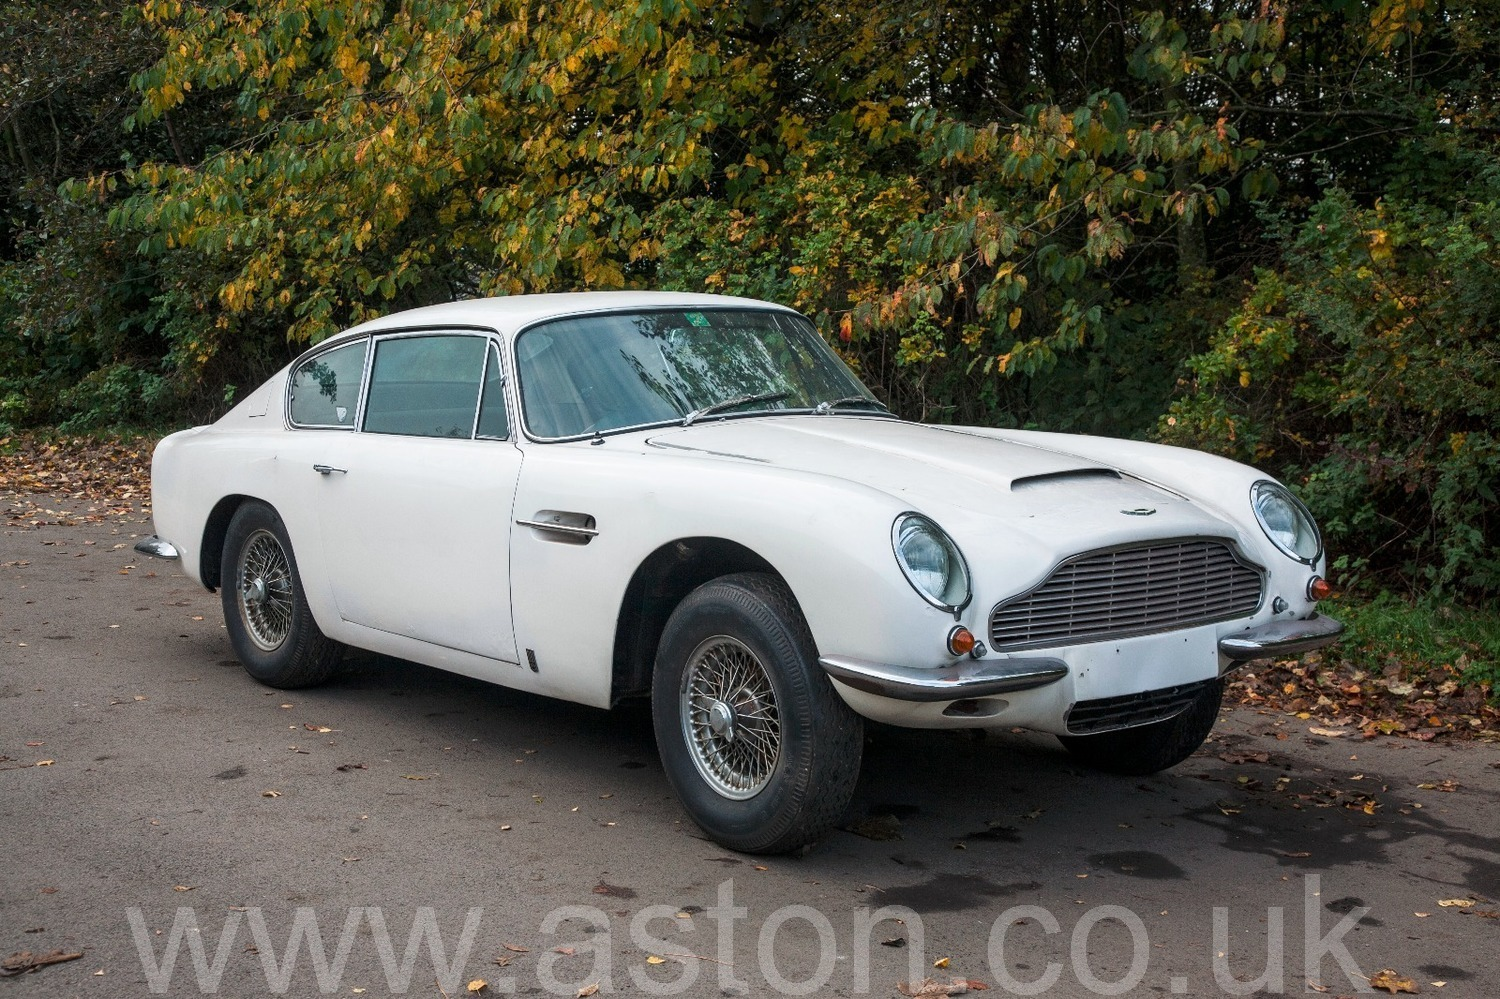 Db6 Mki Project 1967 For Sale From The Aston Workshop Aw301015b